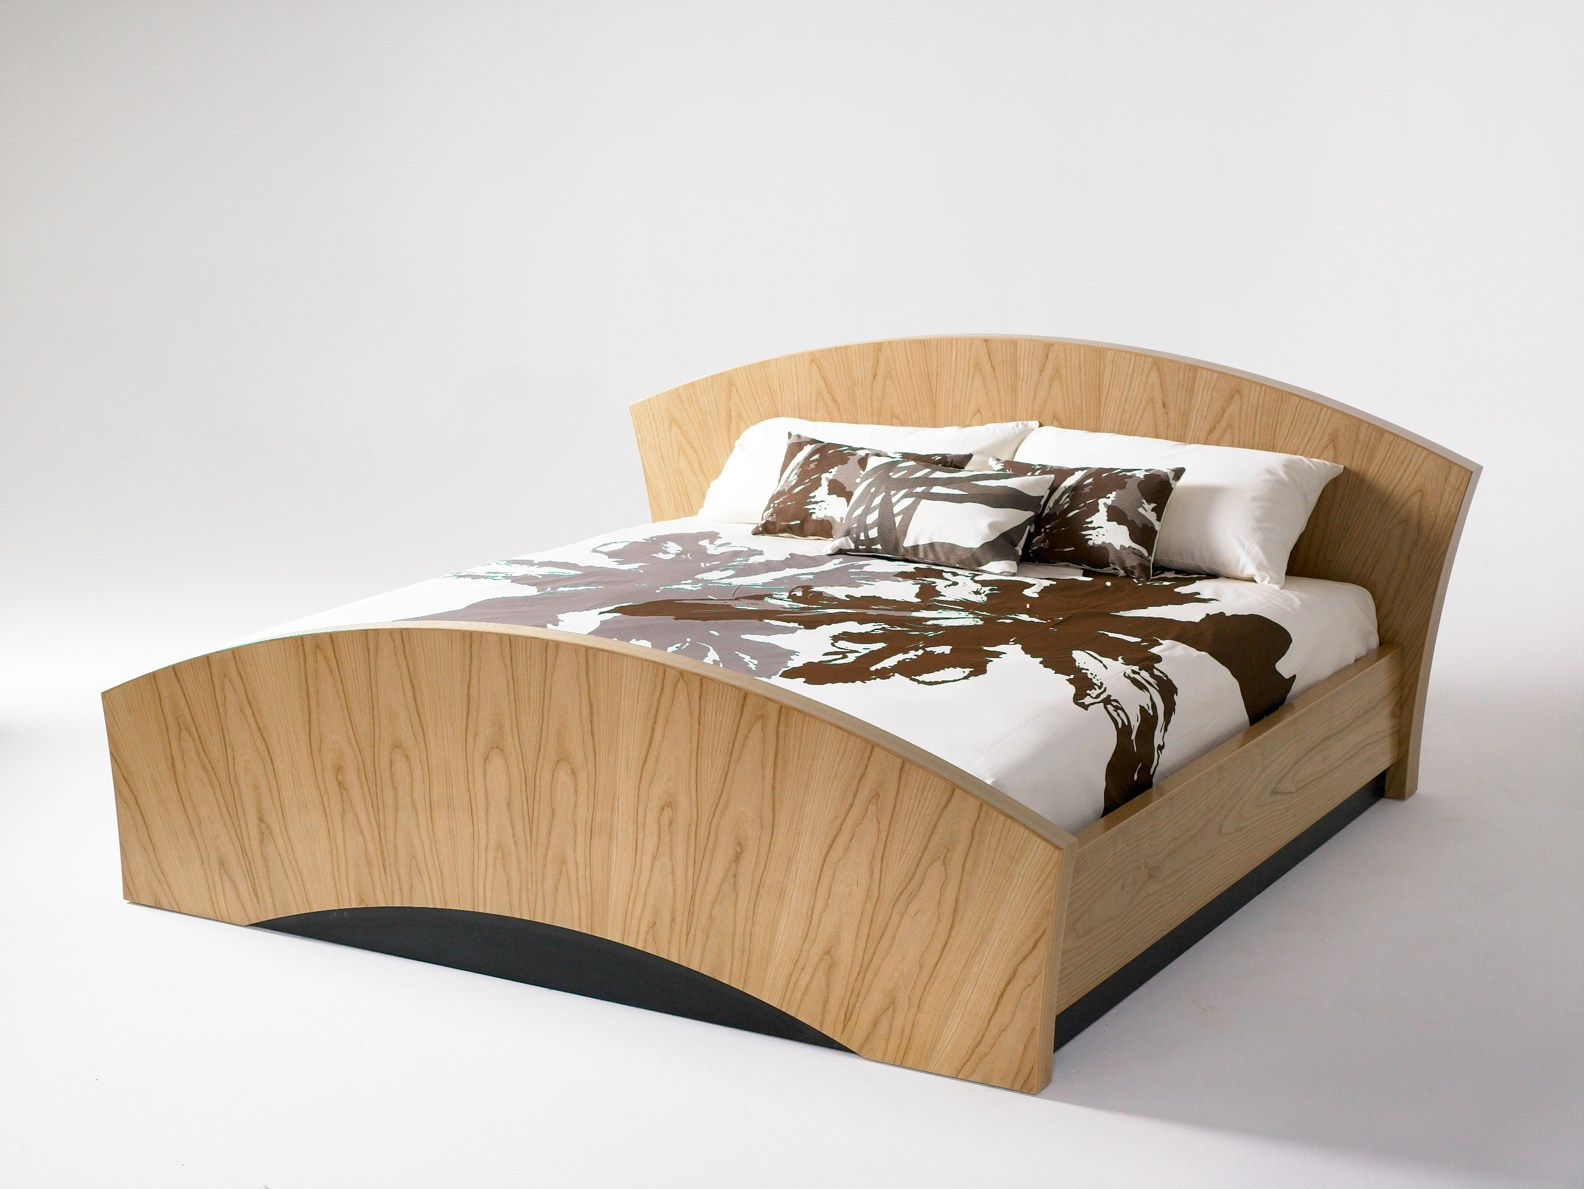 Wood Bed Furniture Design